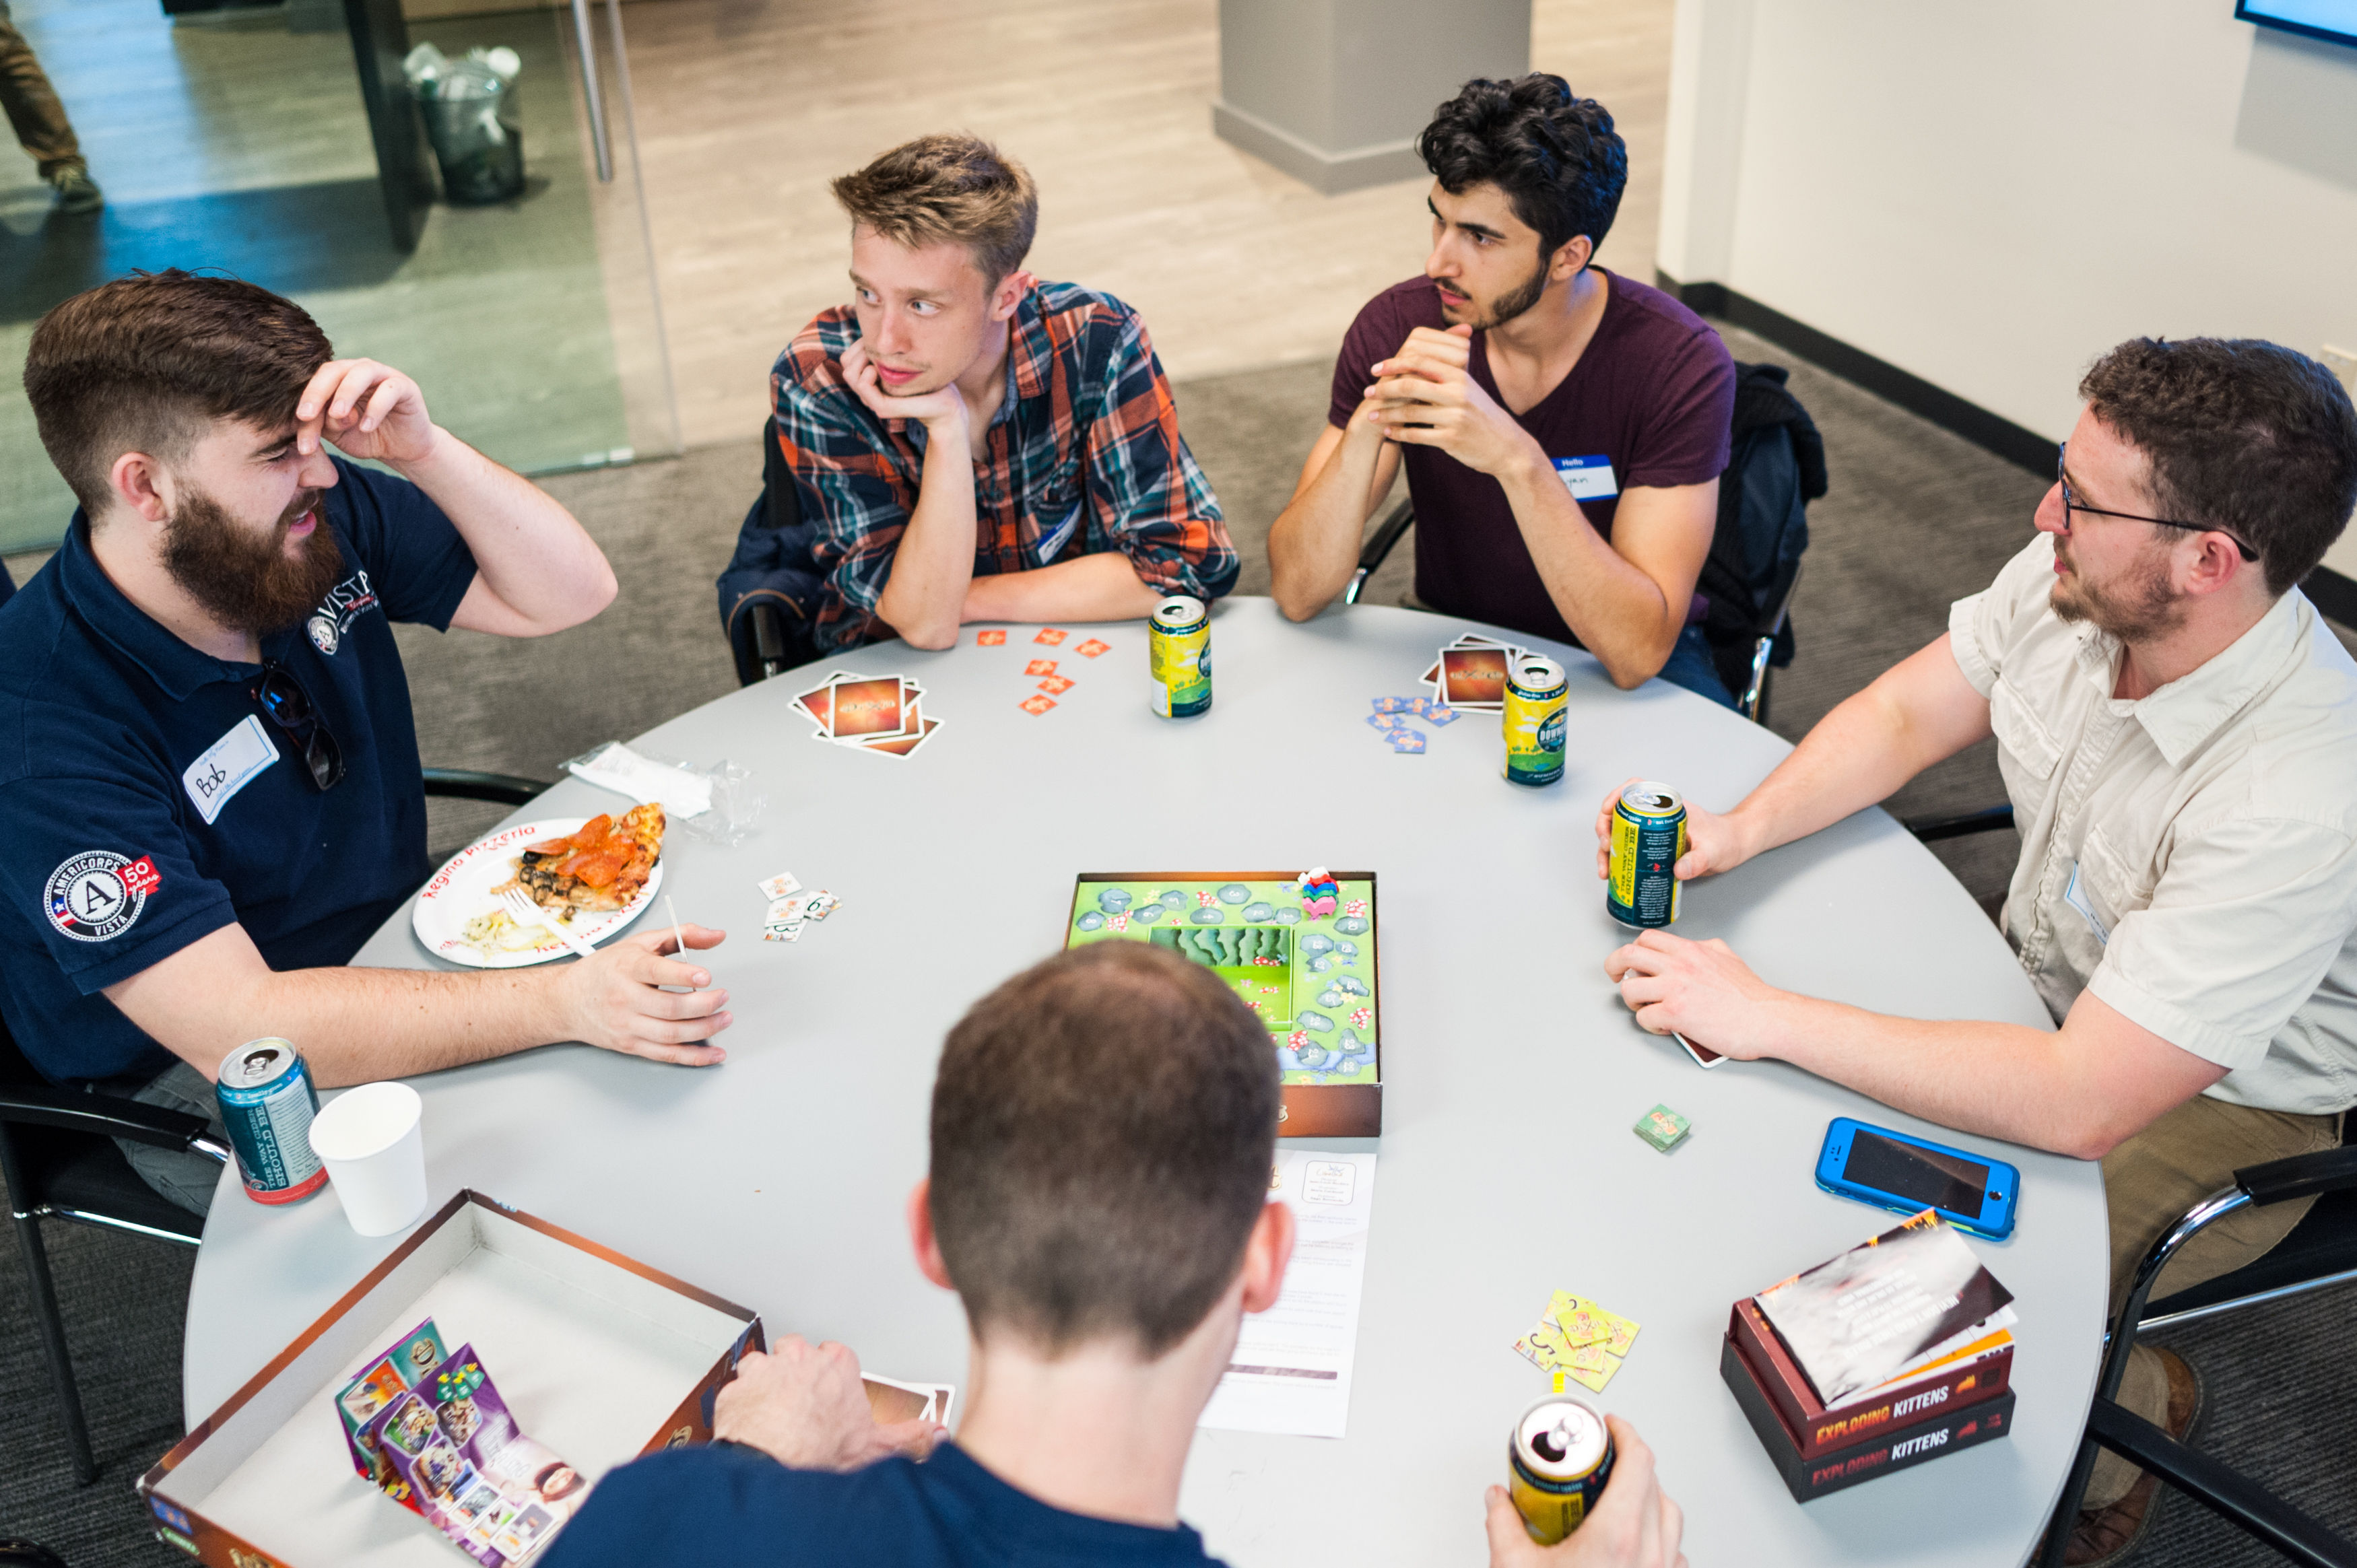 Photo of some fans playing board games